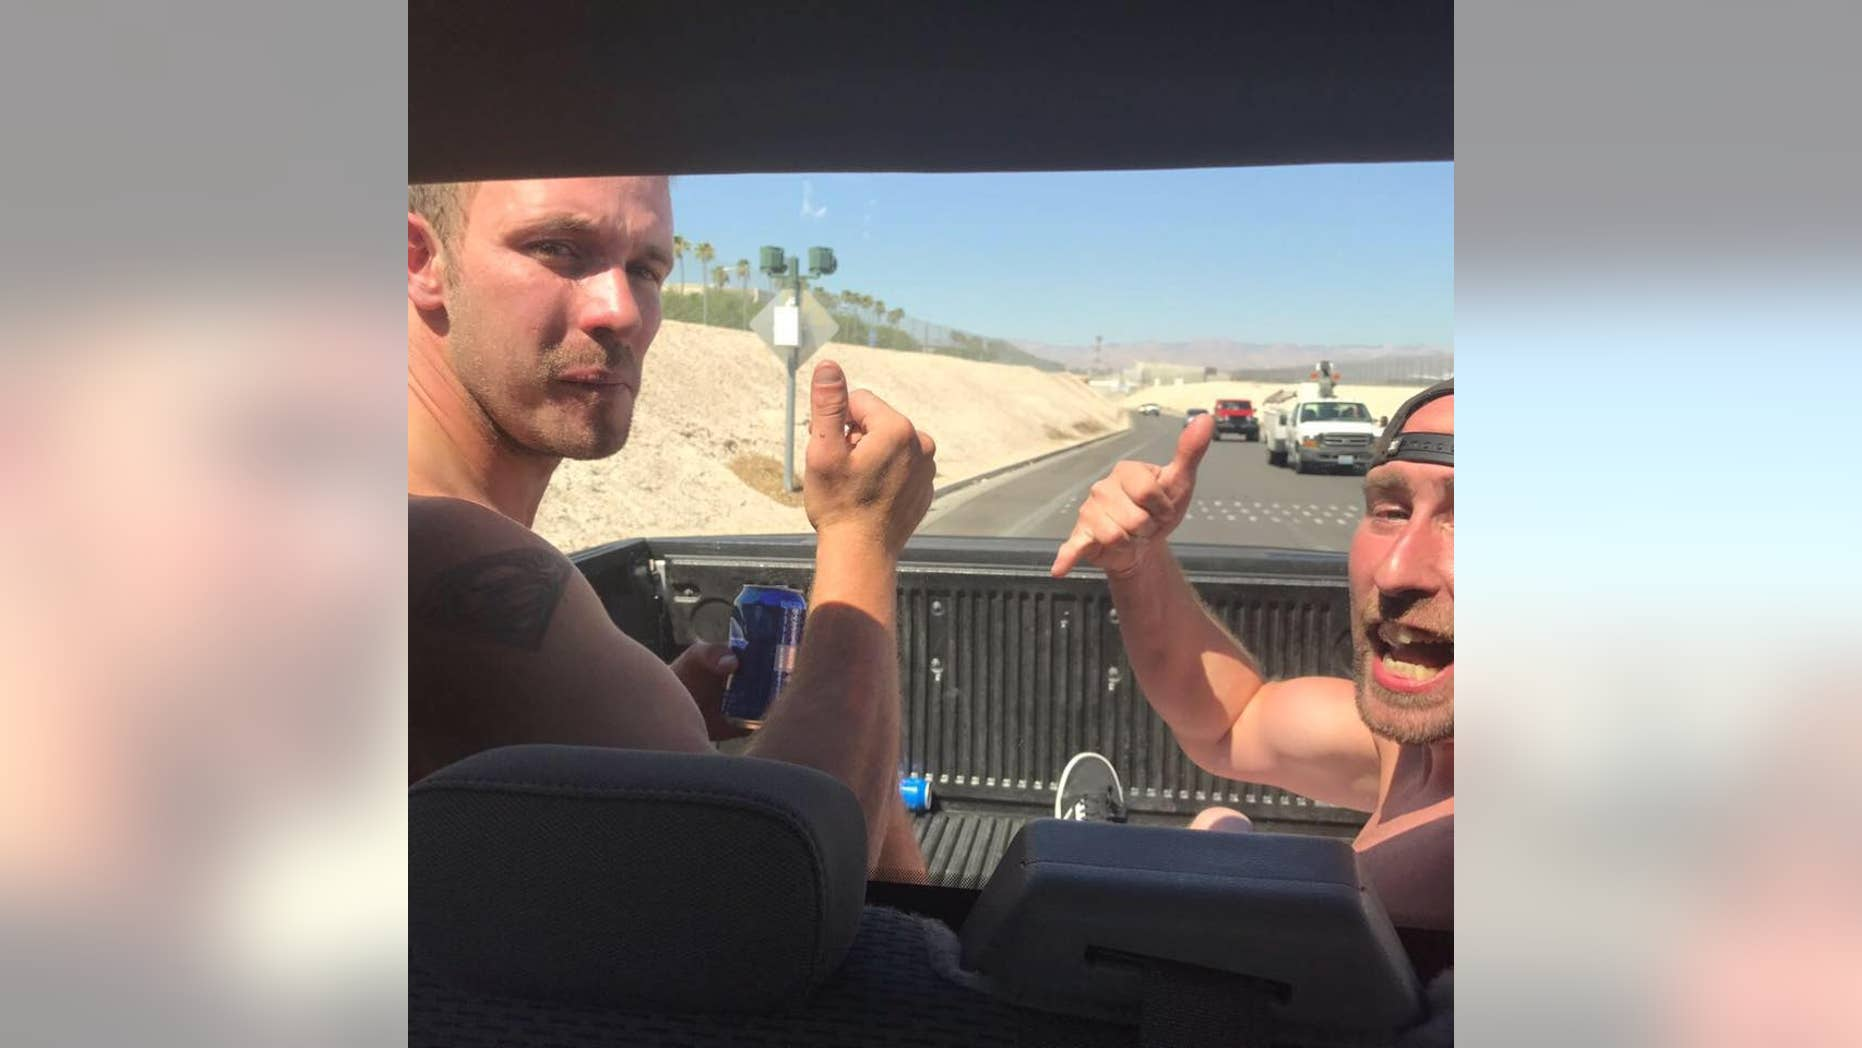 """Welsh """"adrenaline junkie"""" Arron Hughes, left, became the first person to swim across the Hoover Dam — a stunt that has claimed 275 lives in the last decade."""